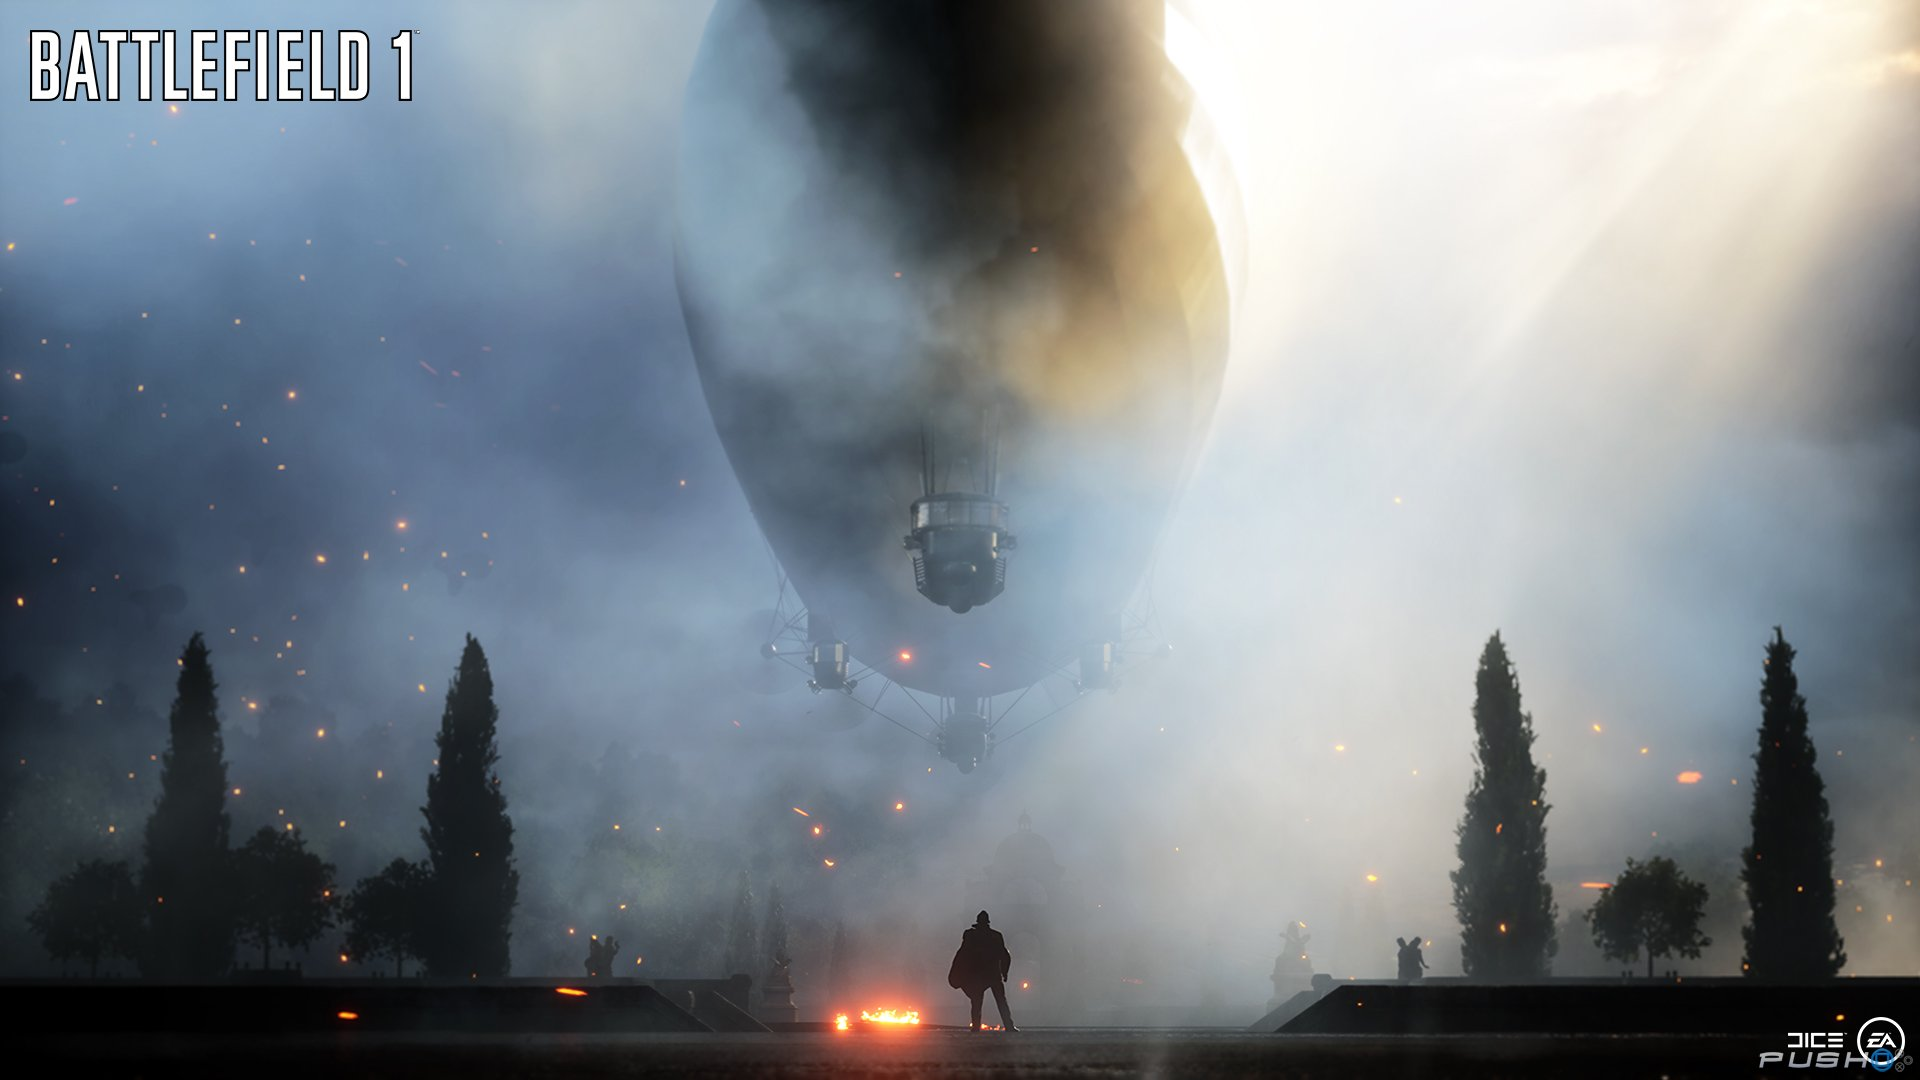 Fan Remakes Battlefield 1 Trailer In GTA 5 With Hilarious Results large